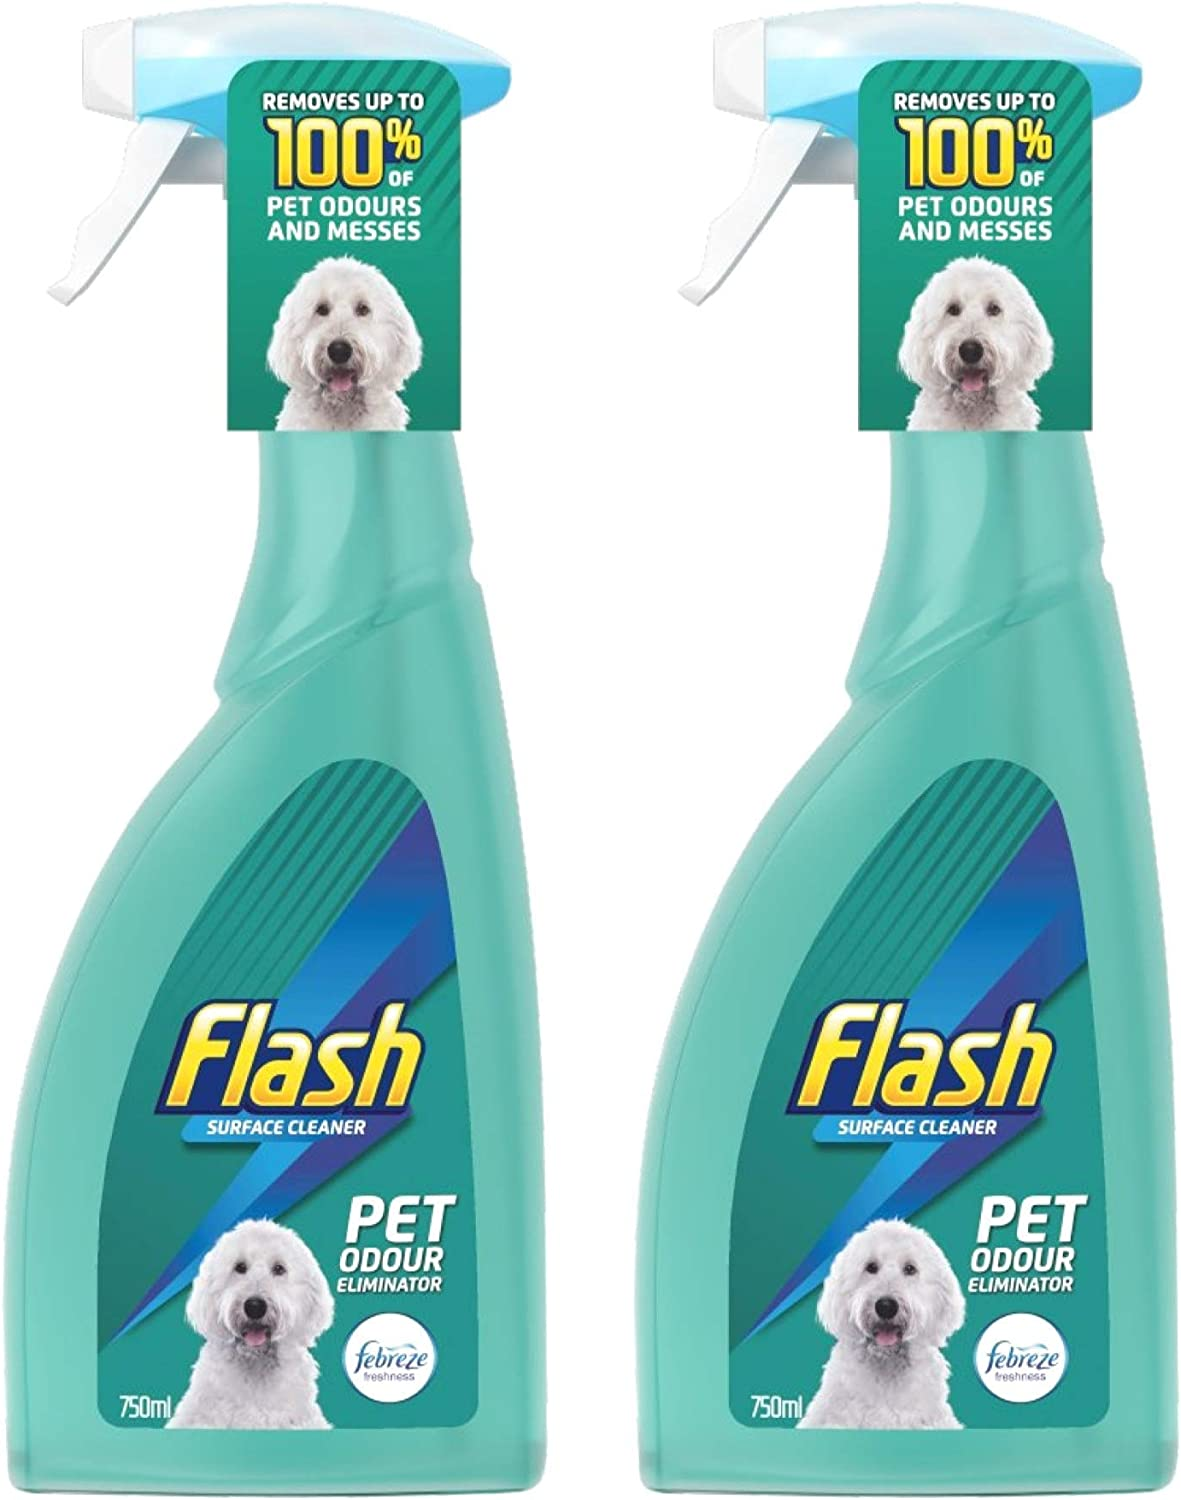 Flash Limpiador de superficies en spray eliminador de olores de mascotas, 750 ml, paquete de 2